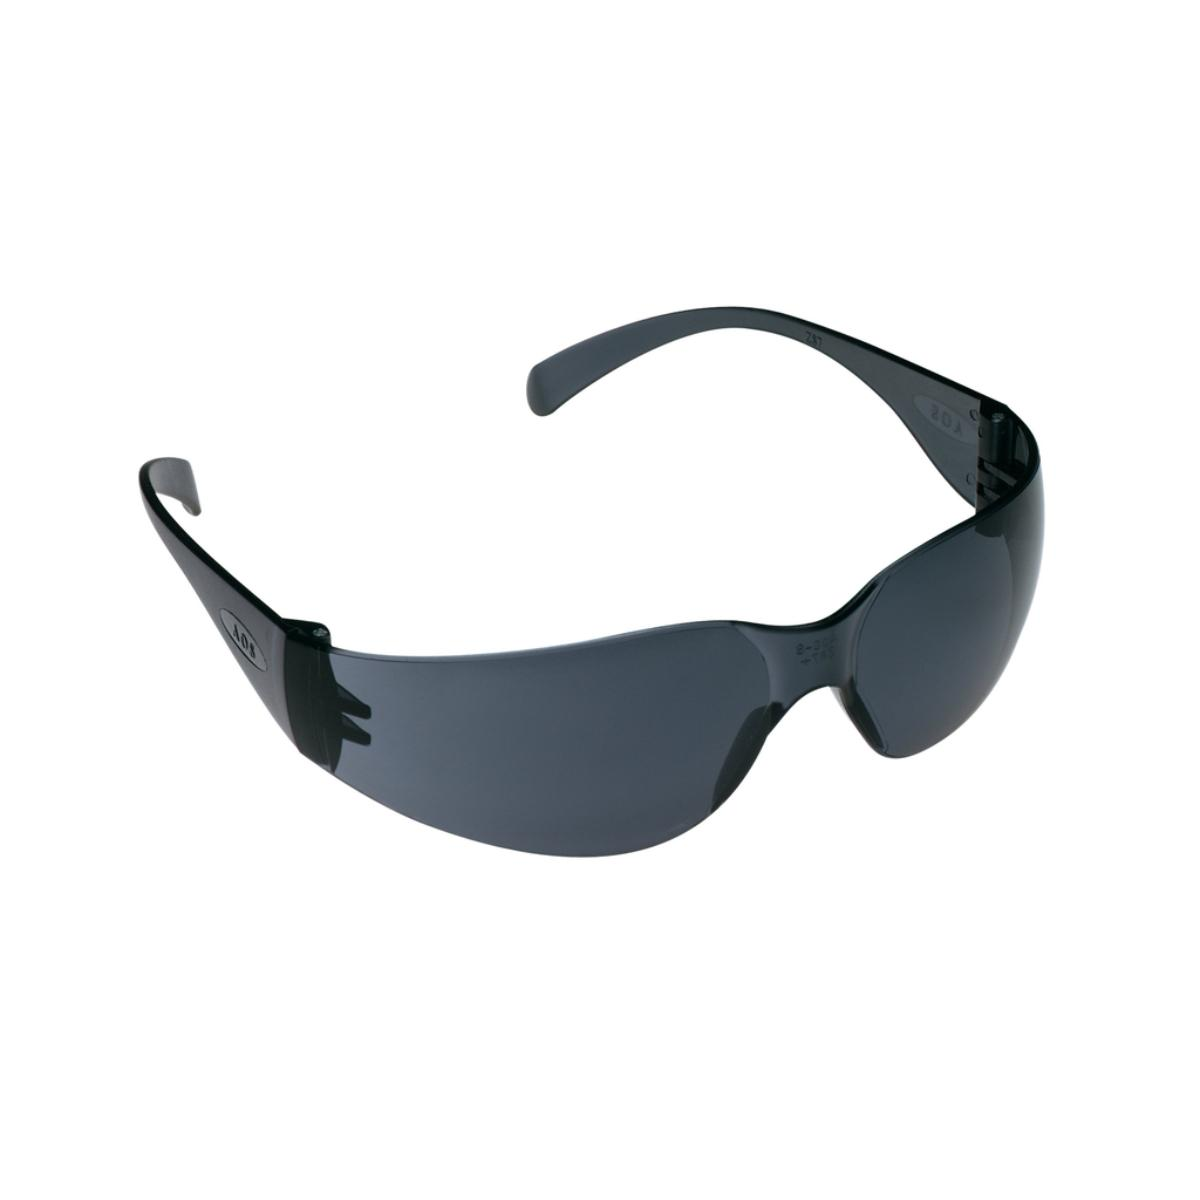 3M Virtua Protective Eyewear 11327-00000-20 Gray Hard Coat Lens, Gray Temple